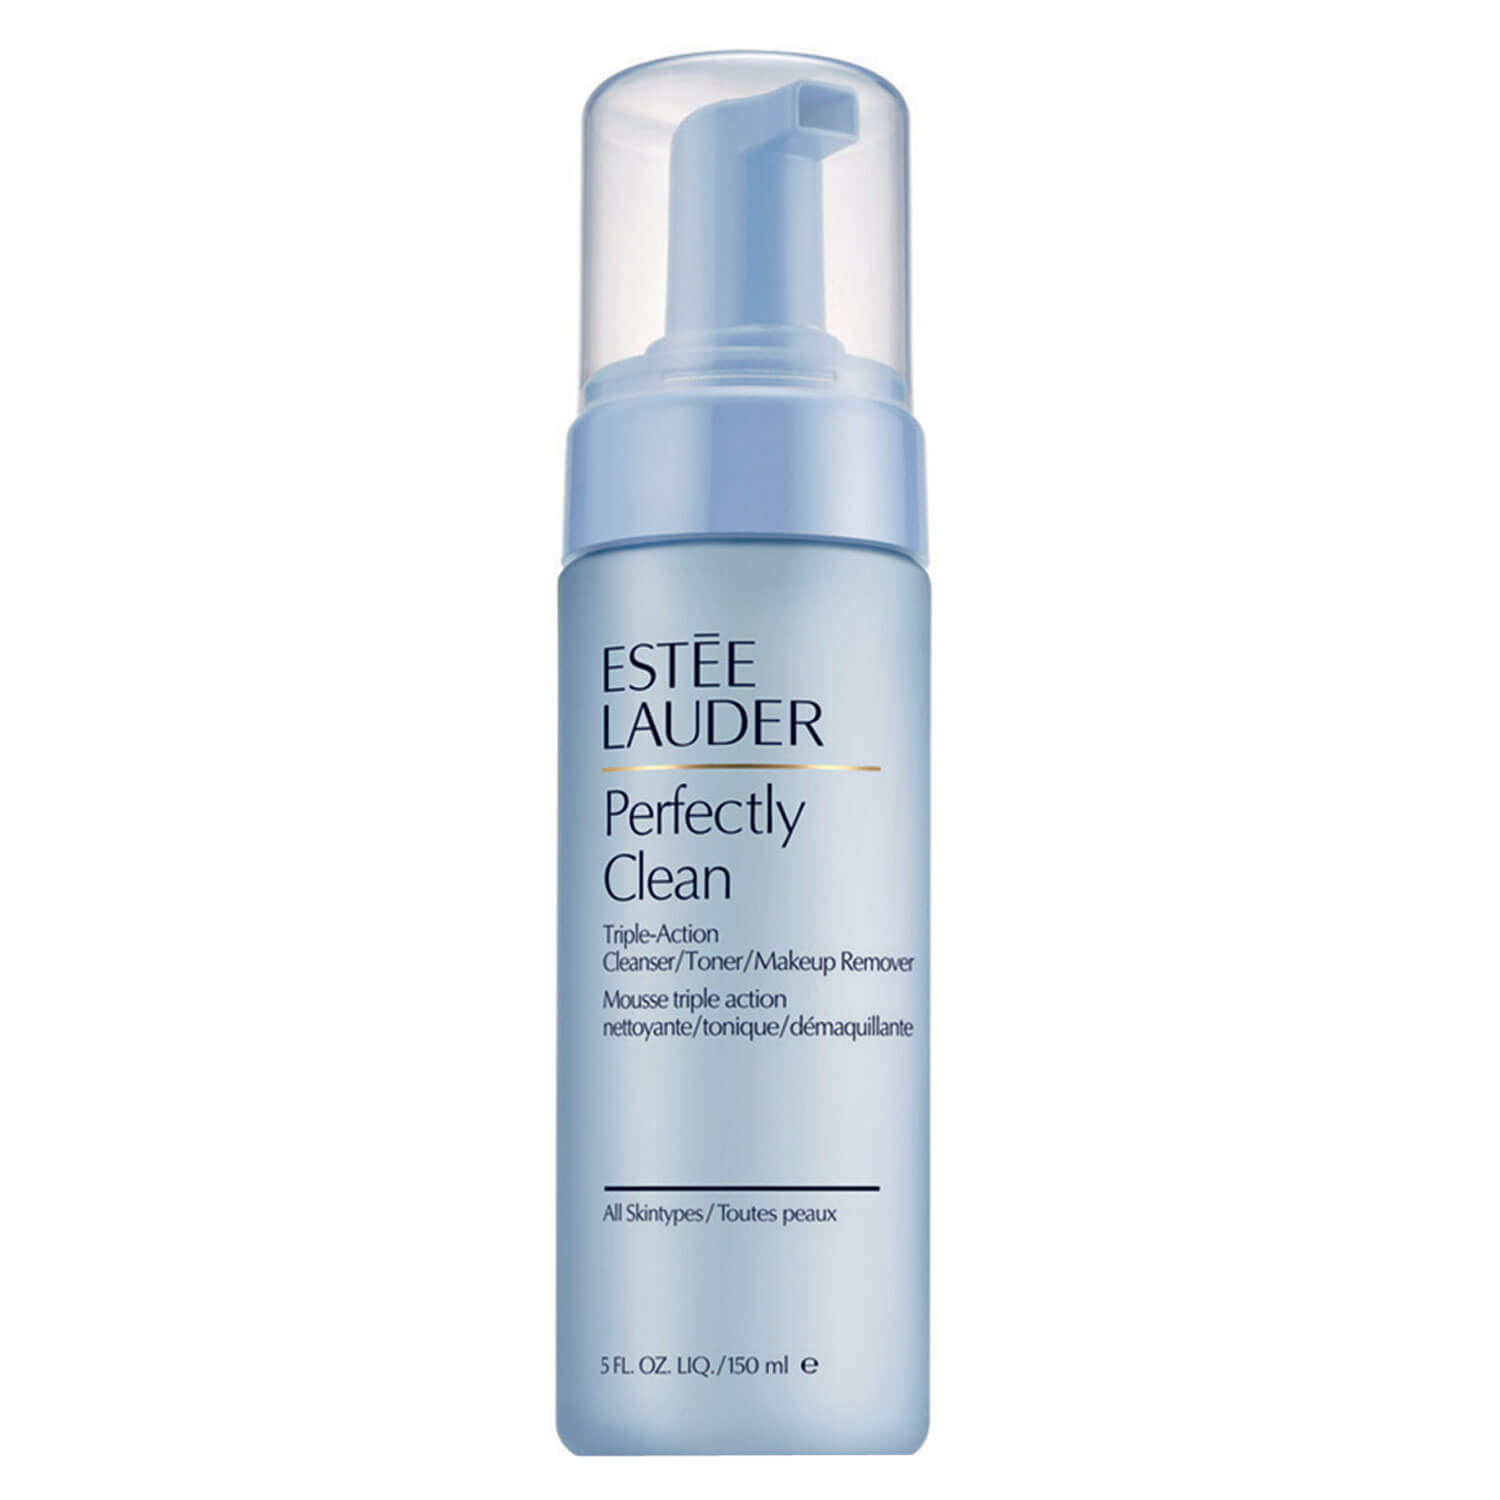 Perfectly Clean - Multi-Action Cleanser/Toner/Makeup Remover